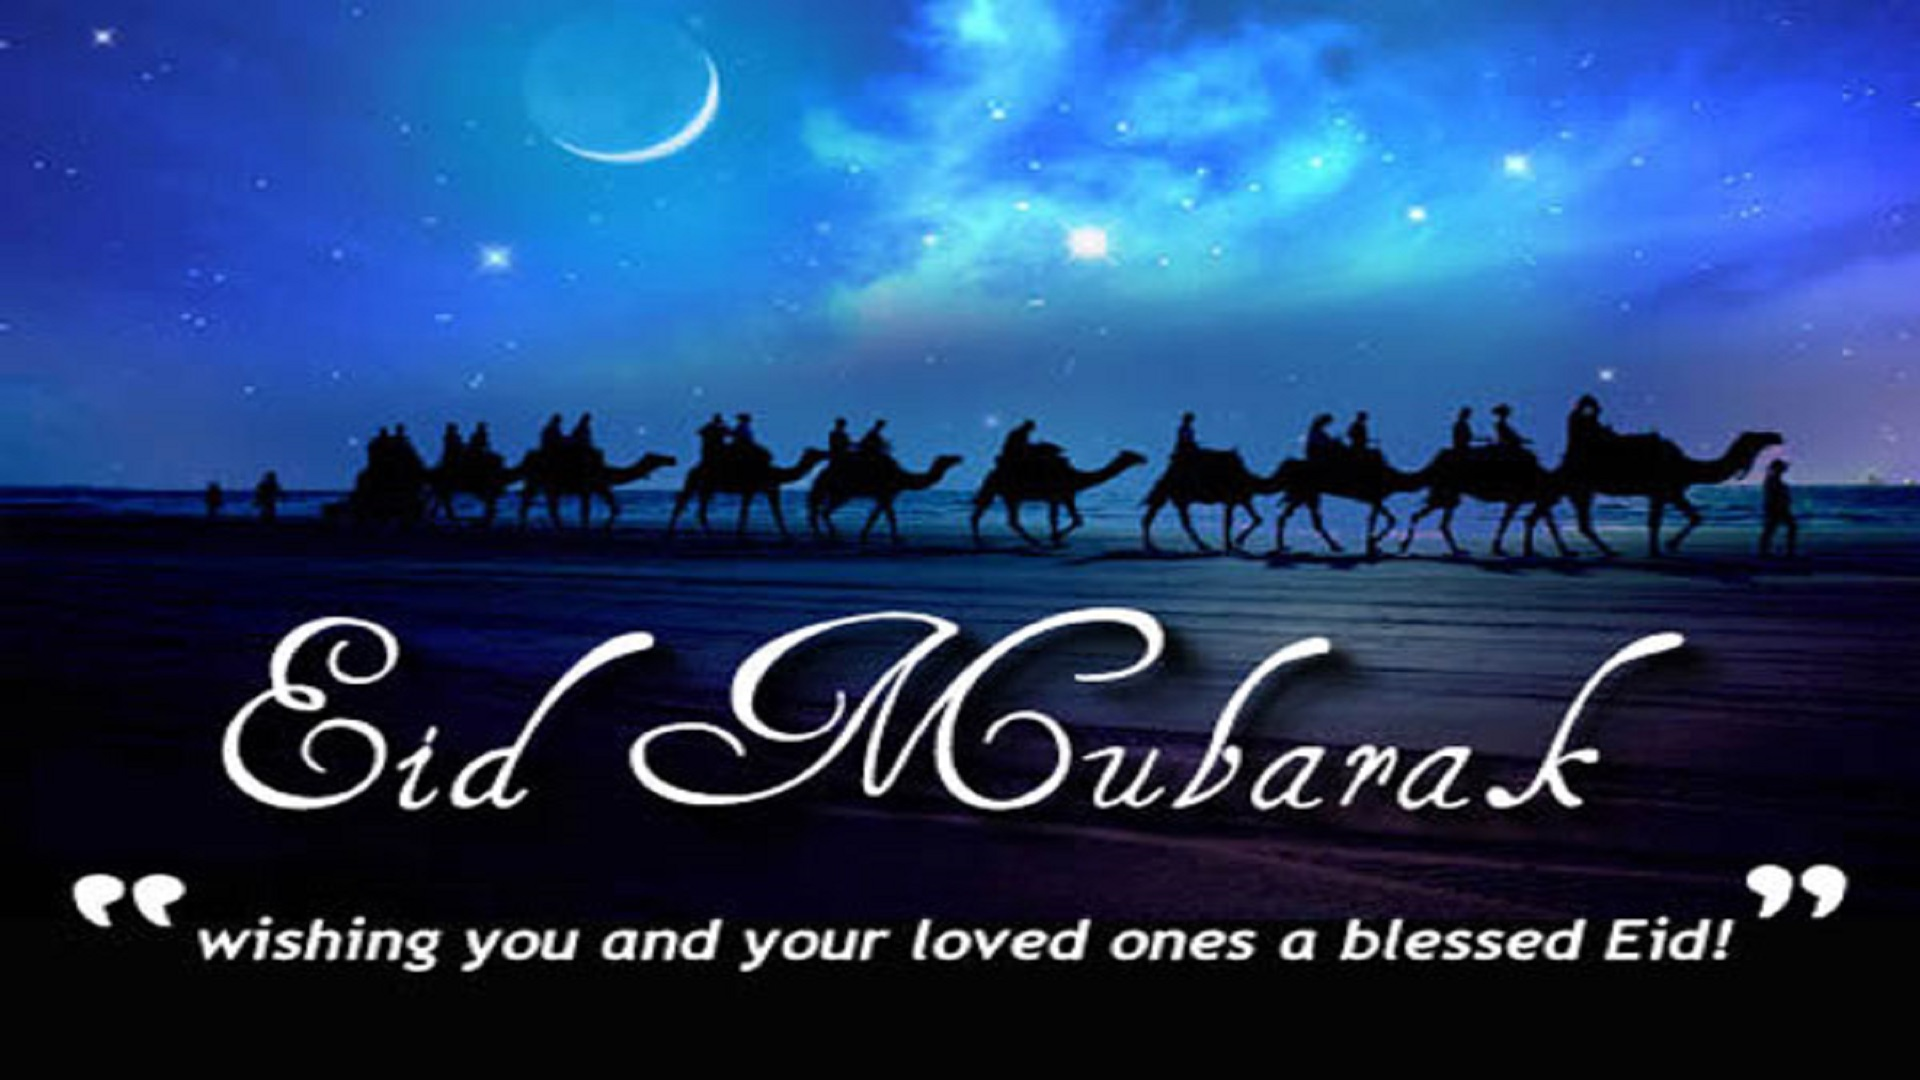 Eid Ul Fitr Wallpapers Greetings Free Hd Hd Wallpaper